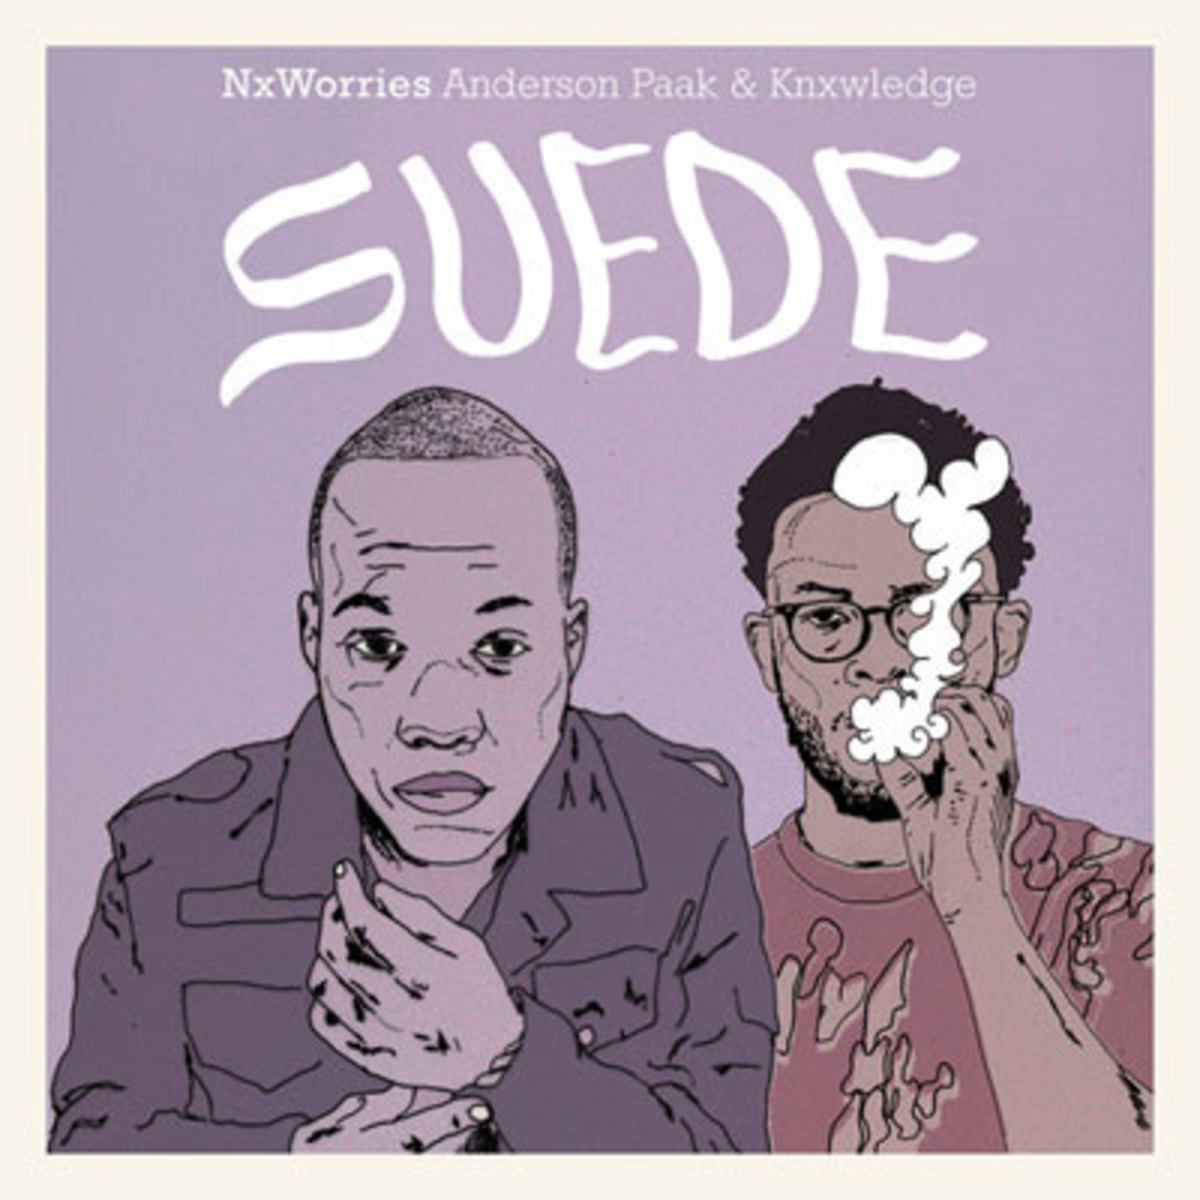 nxworries-suede.jpg